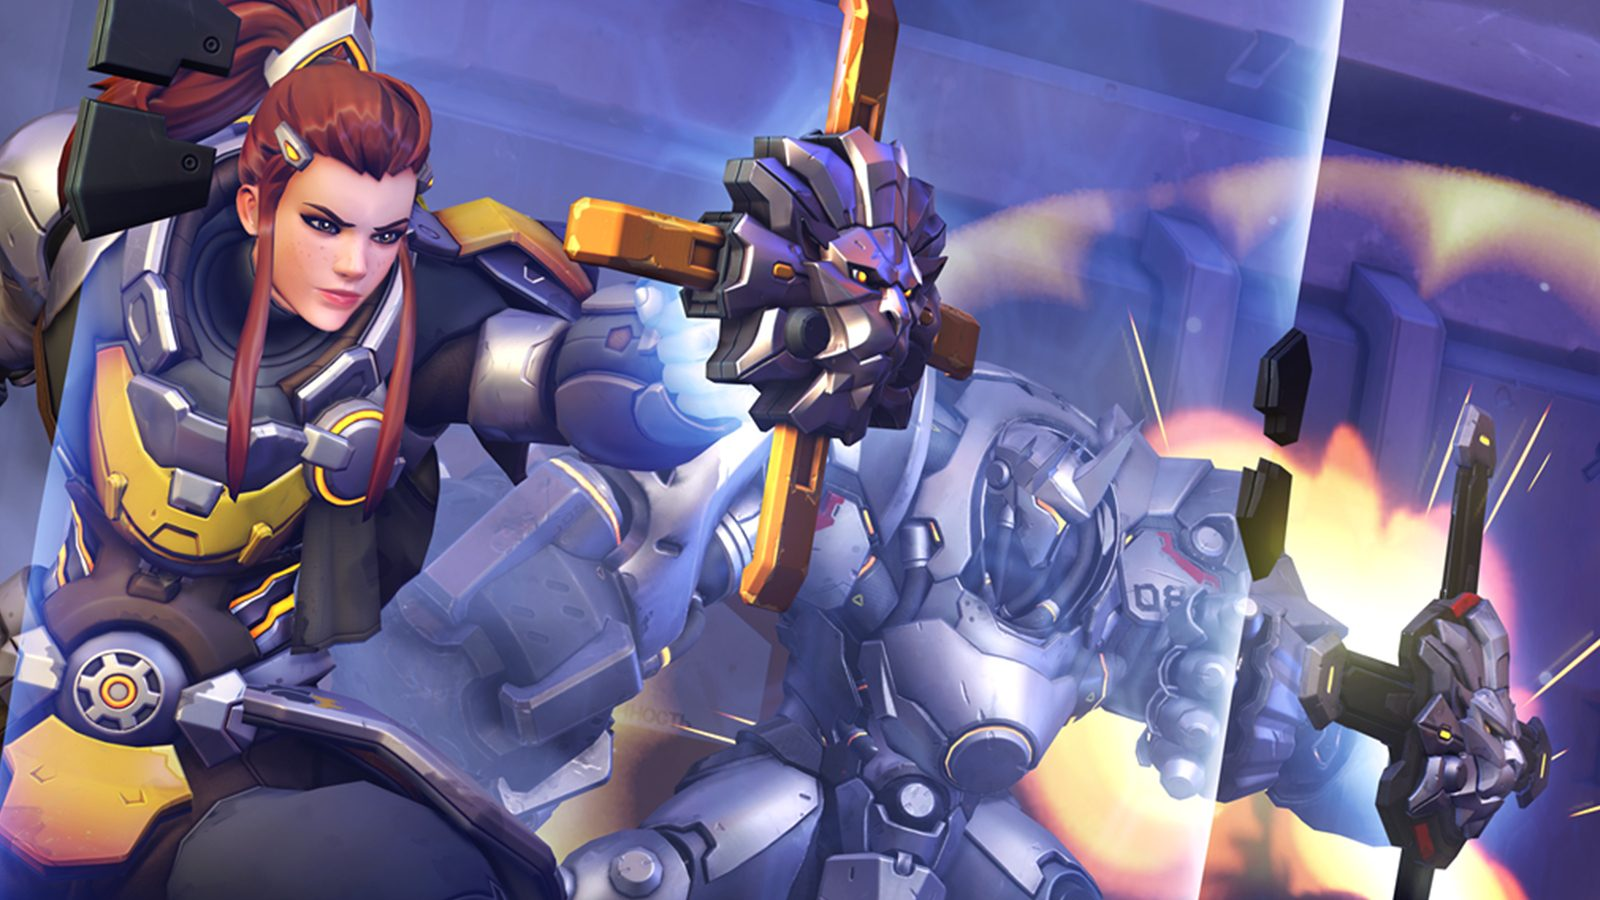 The double-shield Overwatch meta may be on its last legs in the coming August patches.